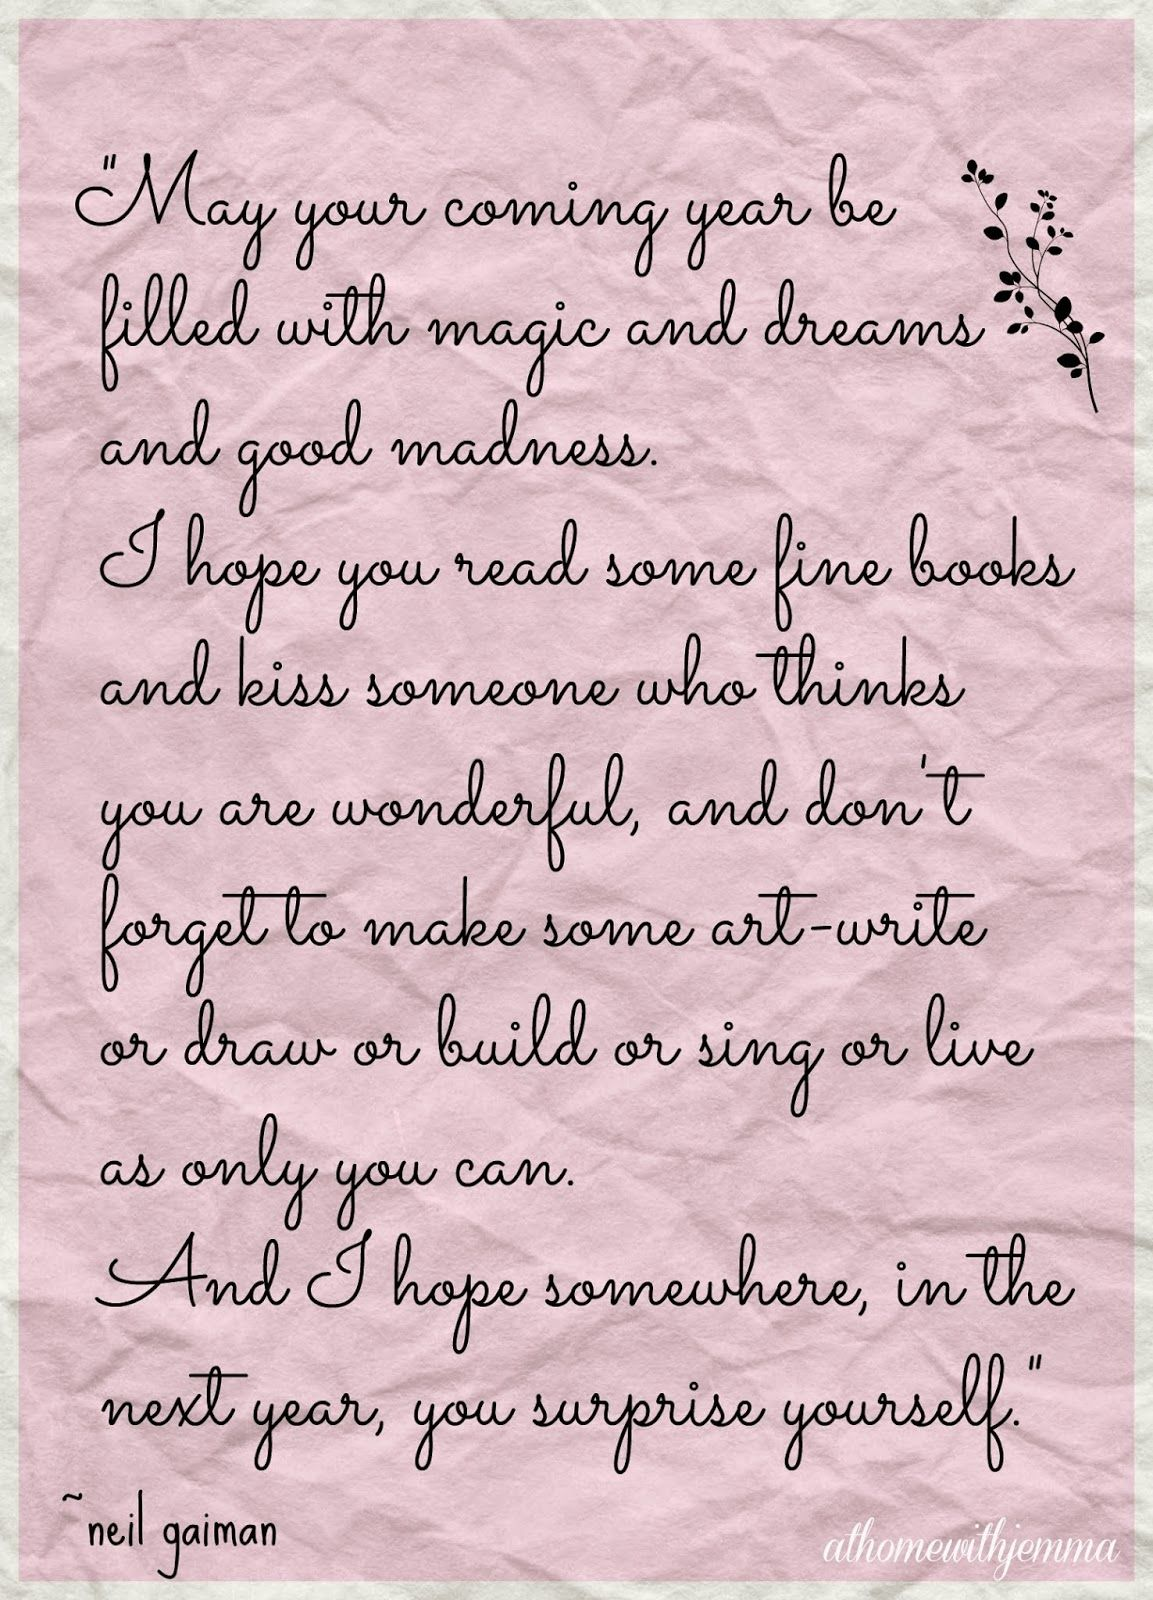 New Years Table & Wish | Inspirational words of wisdom ...